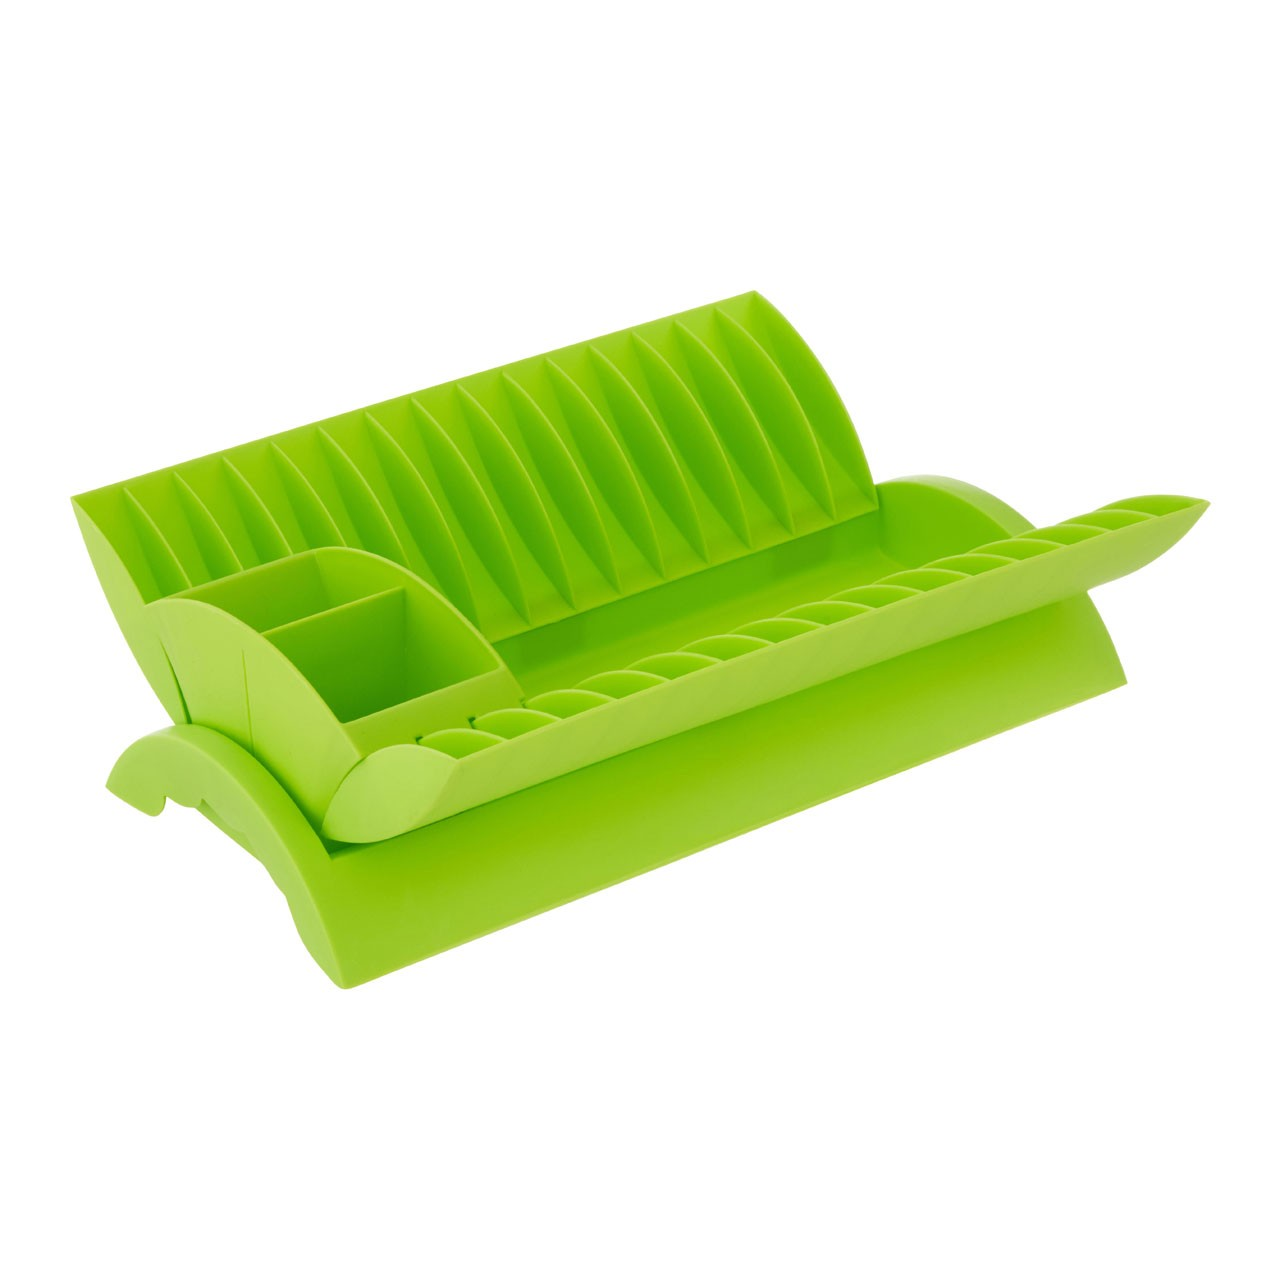 Dish Drainer with Removable Cutlery Caddy - Lime Green